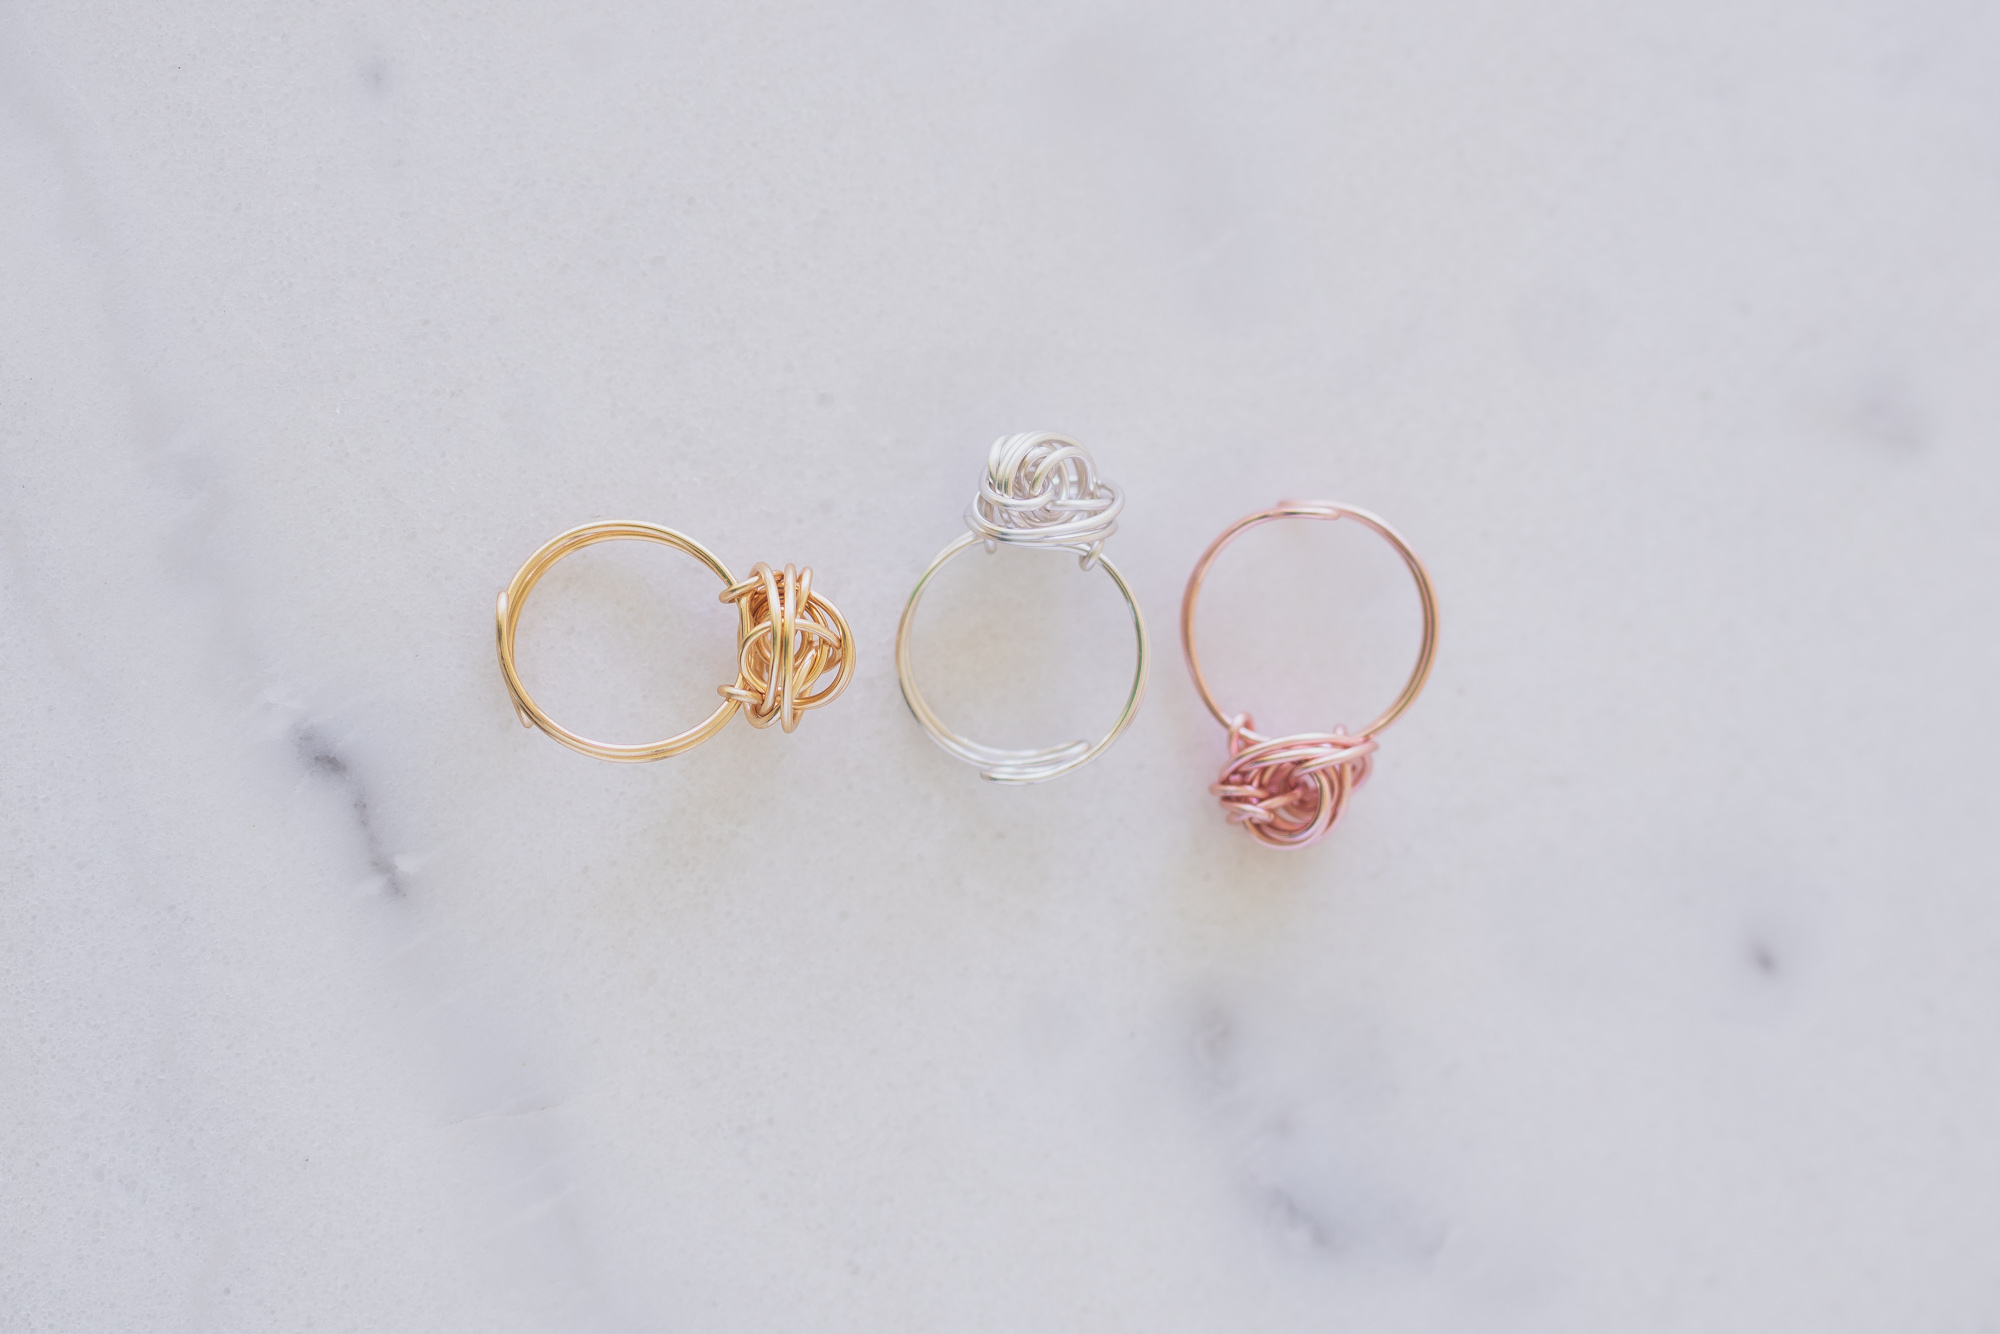 Colors Displayed : Gold, Silver, RoseGold